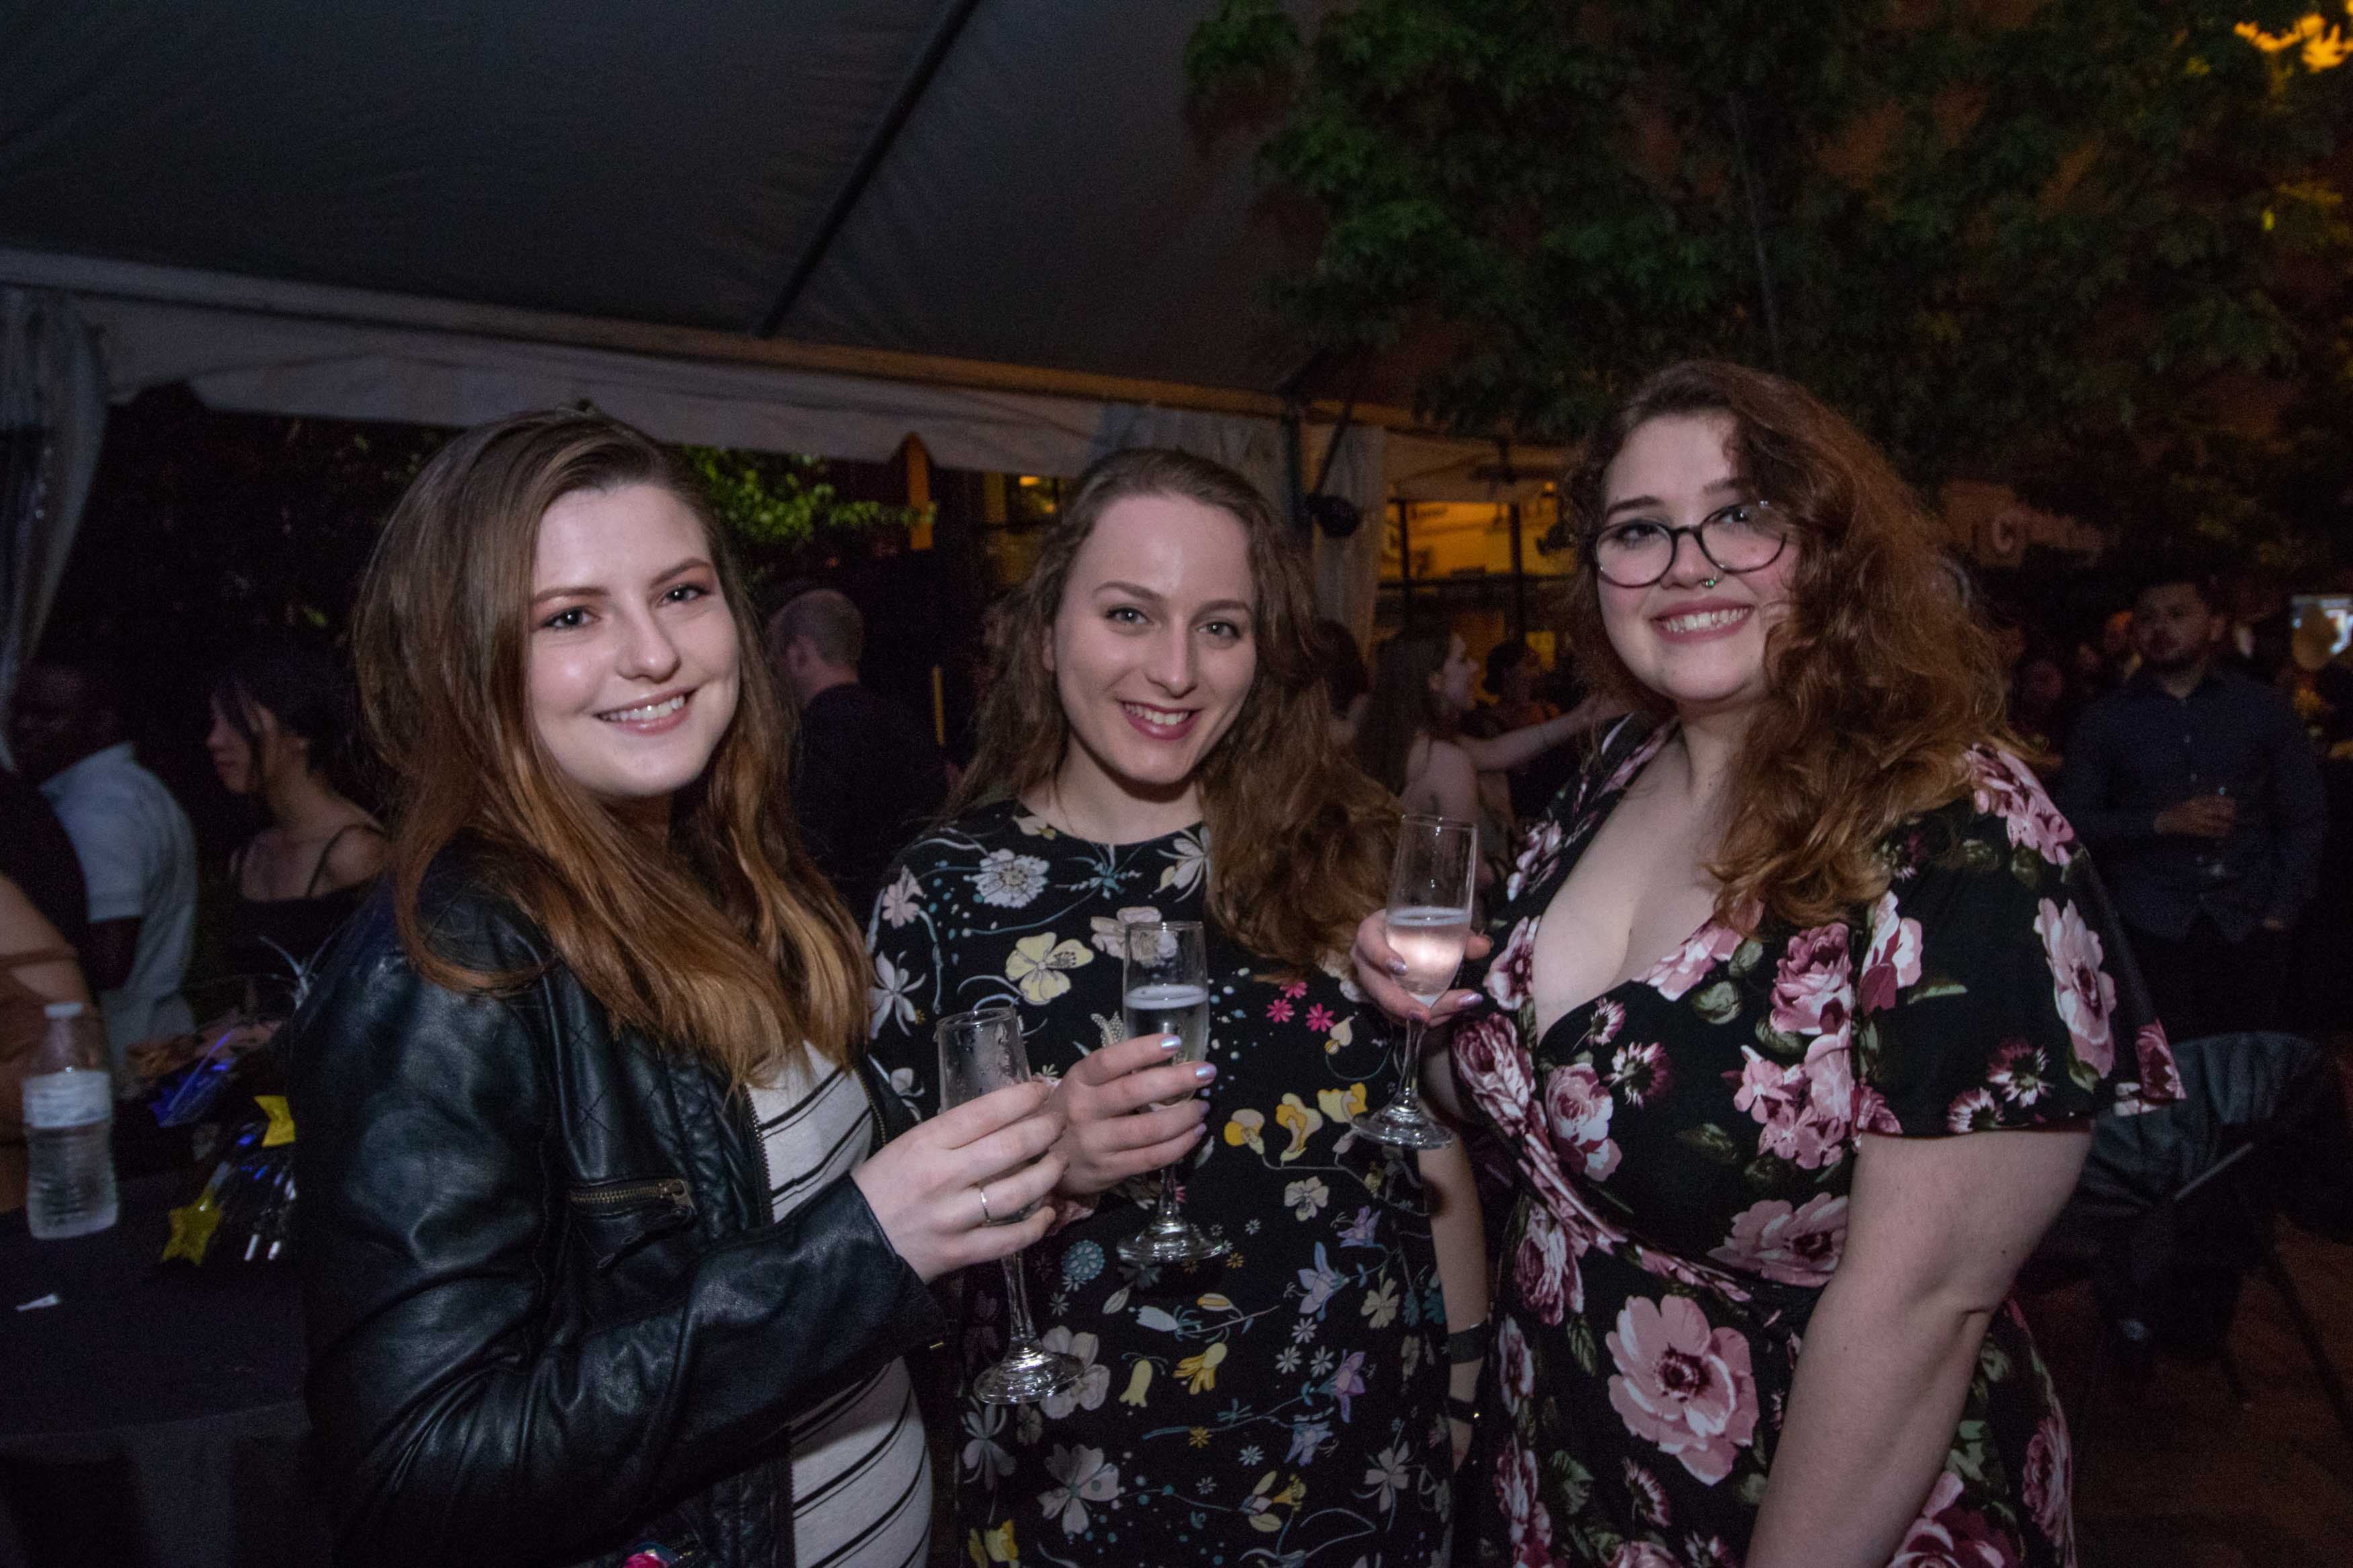 Three girls pose with their wine glasses